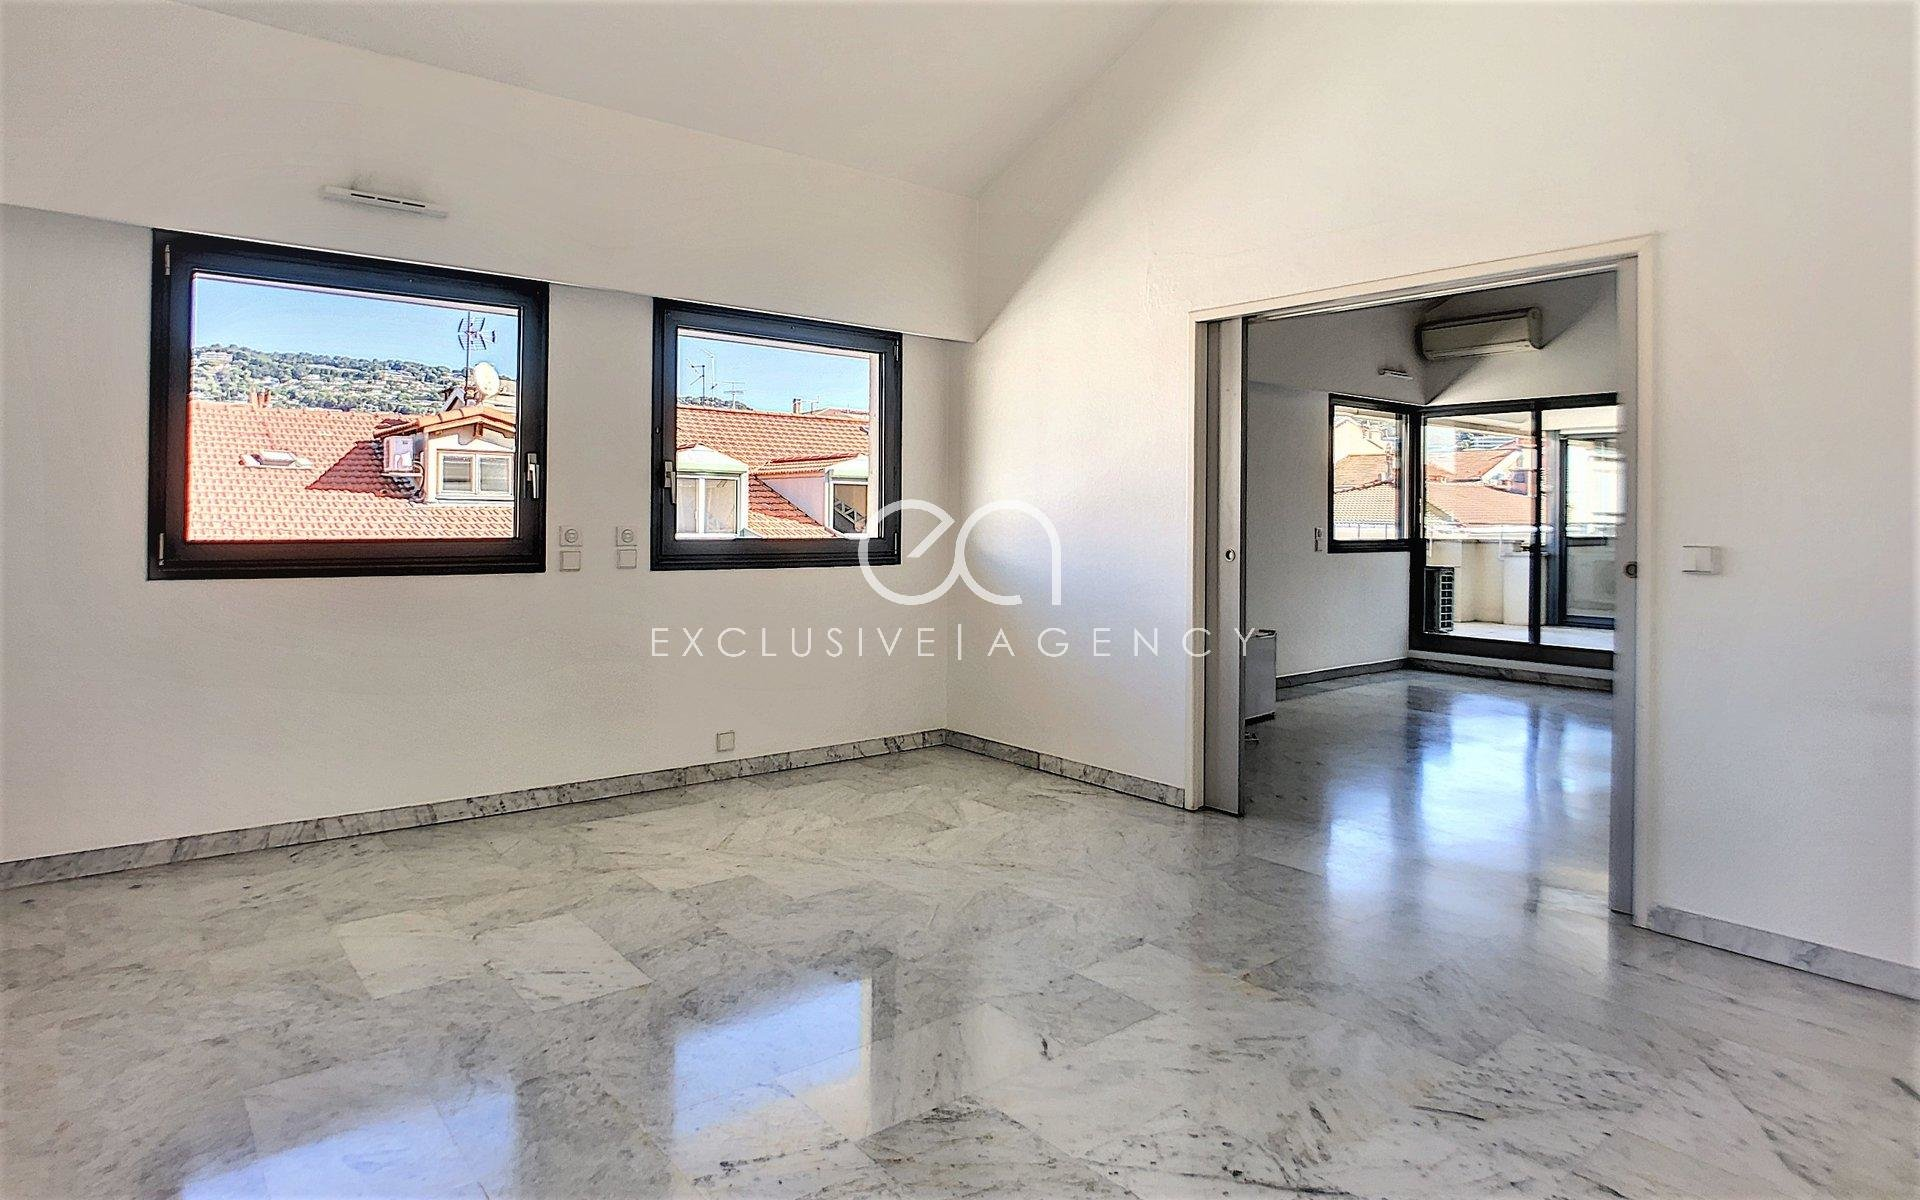 FOR RENT CANNES CENTER ANTIBES STREET 4 rooms apartment 110sqm with 3 terraces